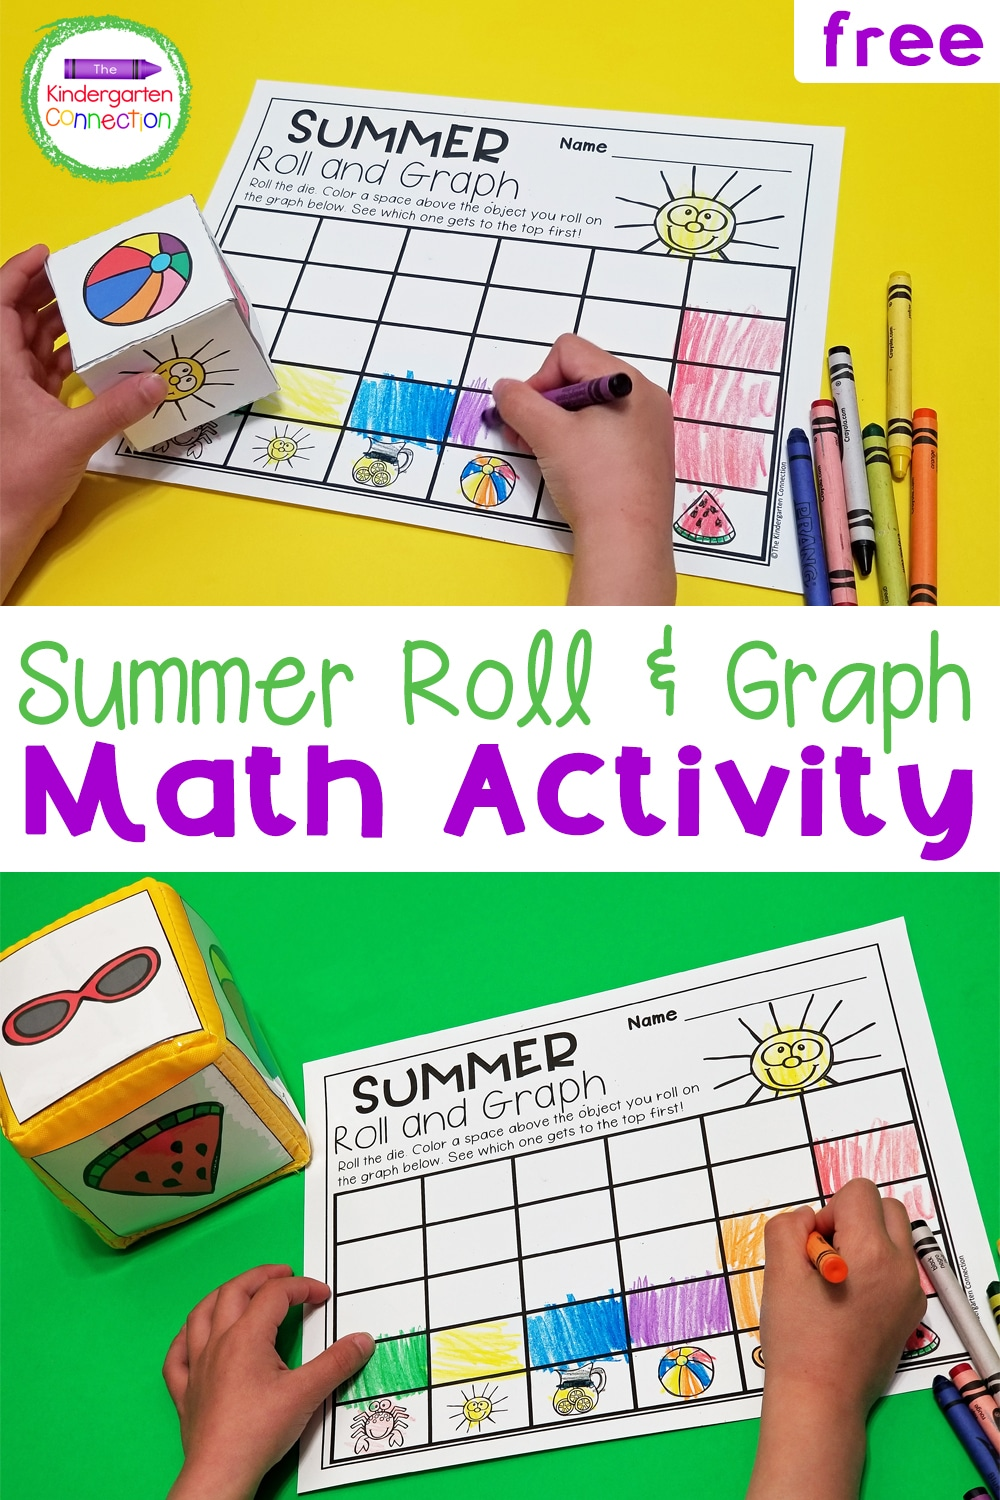 This free Roll and Graph Summer Math Activity for Pre-K & Kindergarten brings the summer fun while also strengthening early graphing skills!